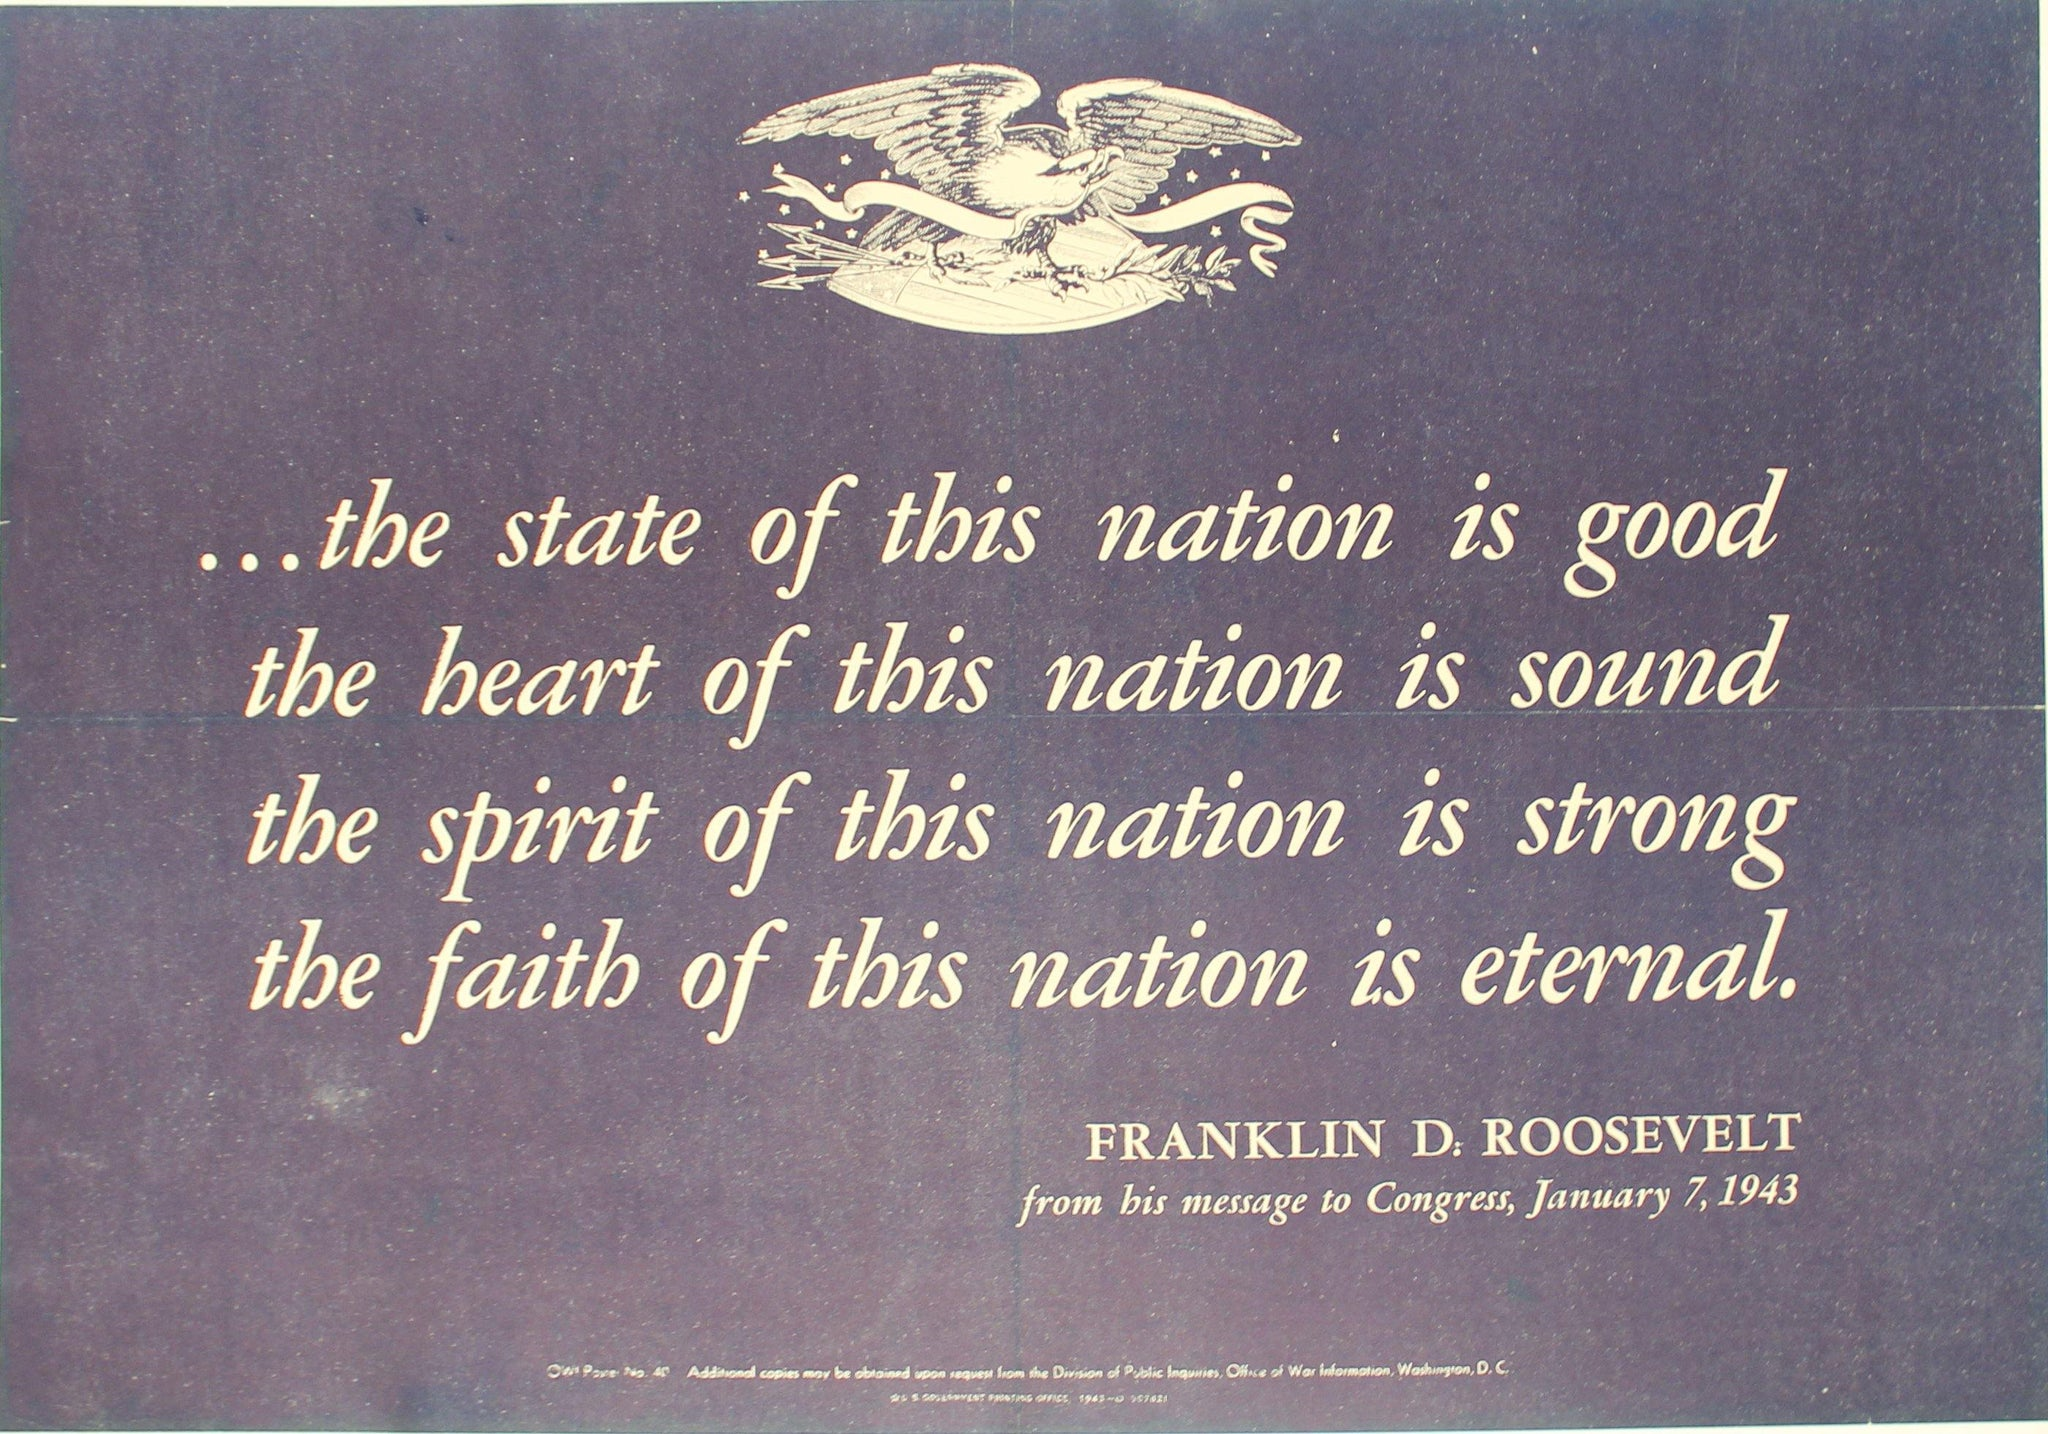 1943 The State of this Nation is Good, Sound, Strong, Eternal - Franklin D. Roosevelt 1/7/1943